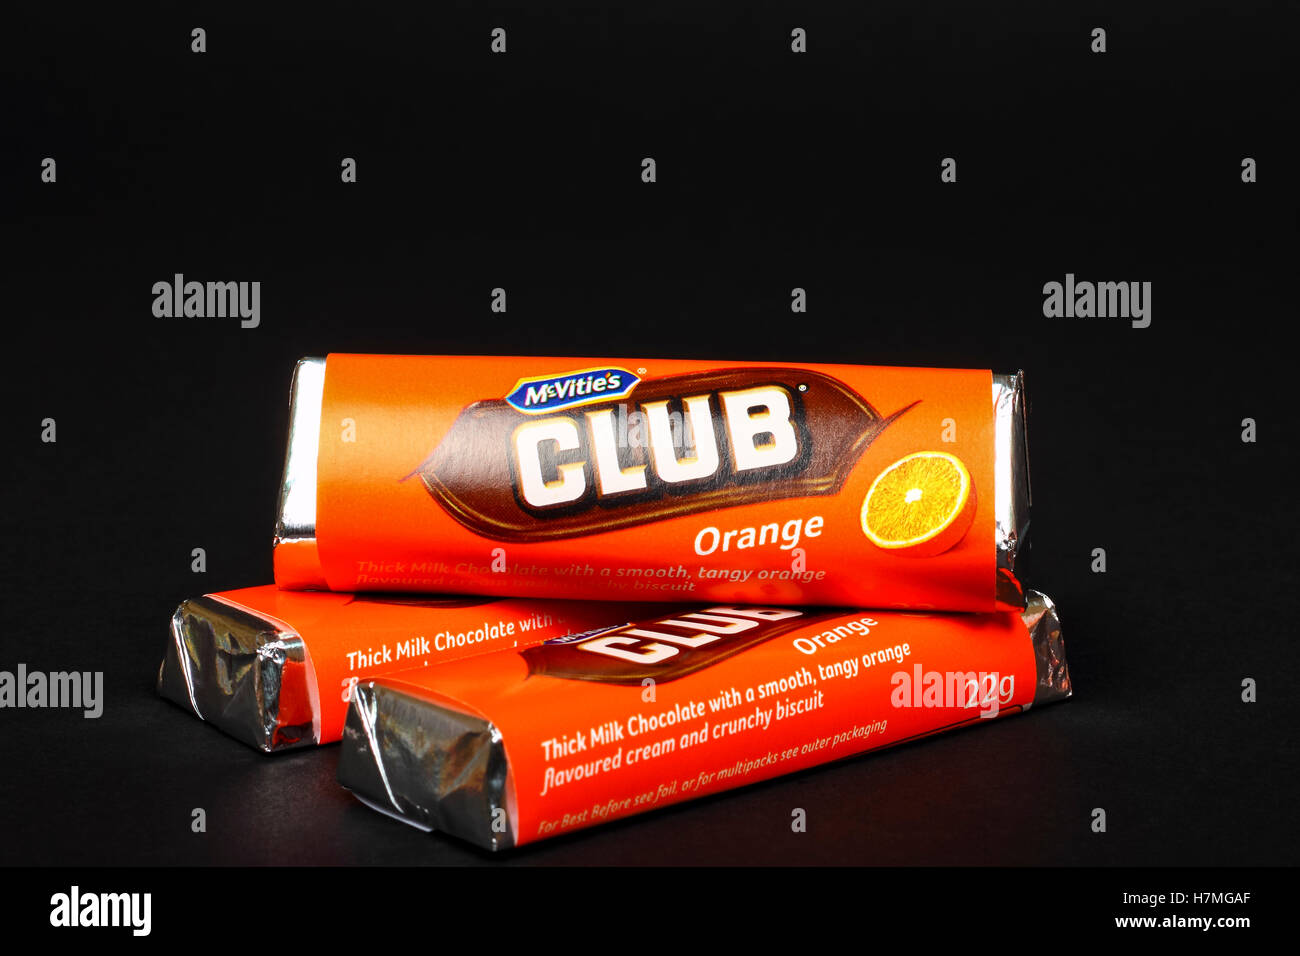 Mcvities Club Orange Flavour Chocolate Biscuit Bar Isolated